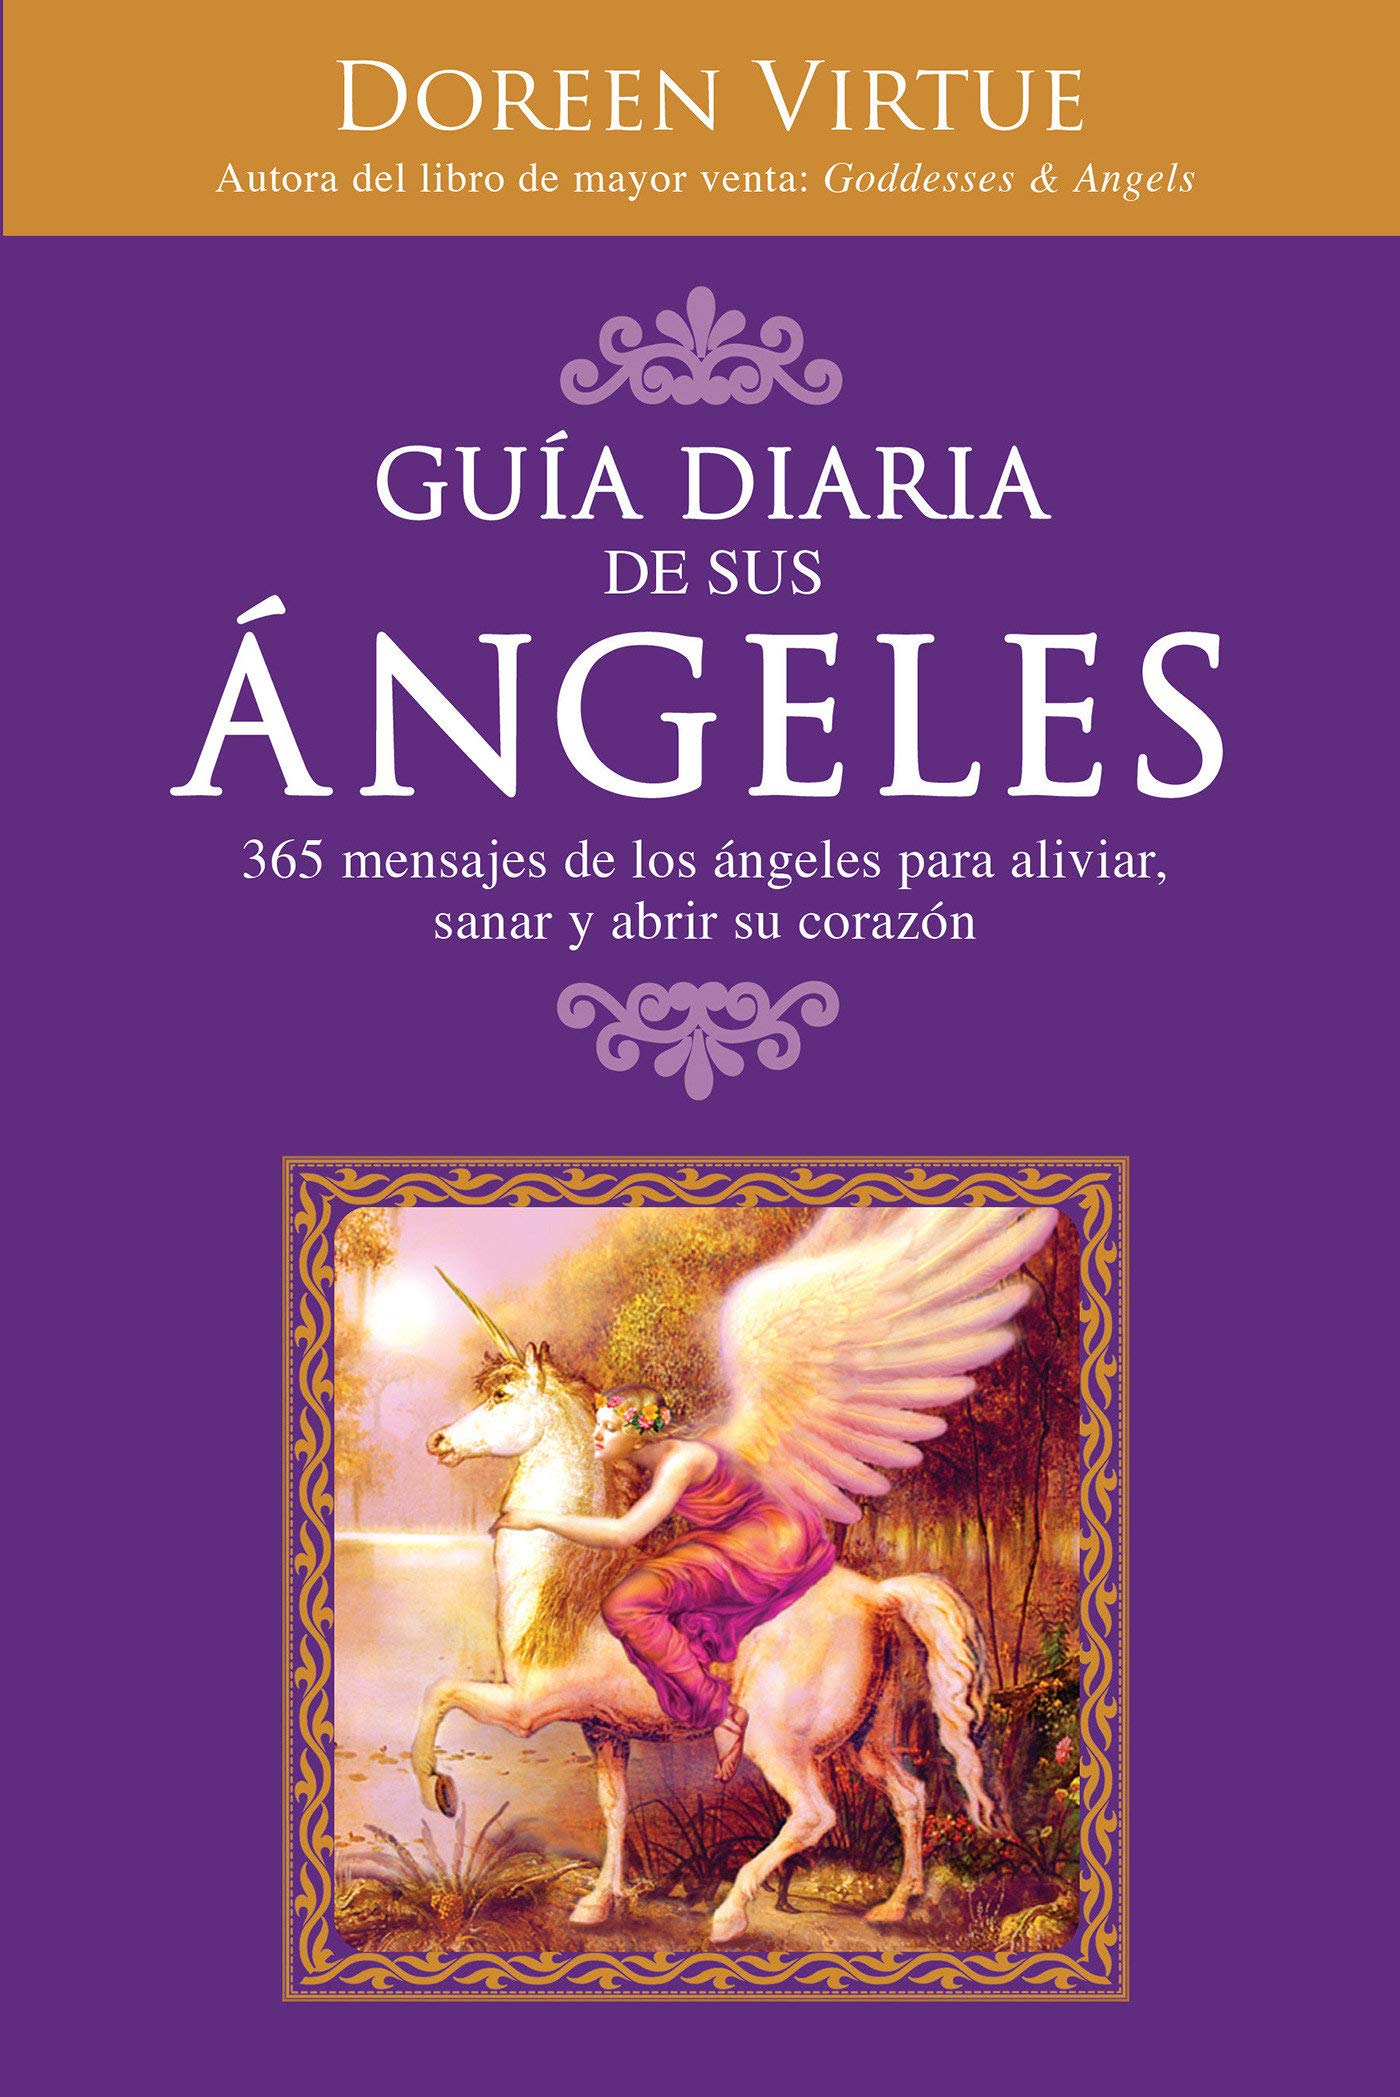 Guia Diaria De Sus Angeles